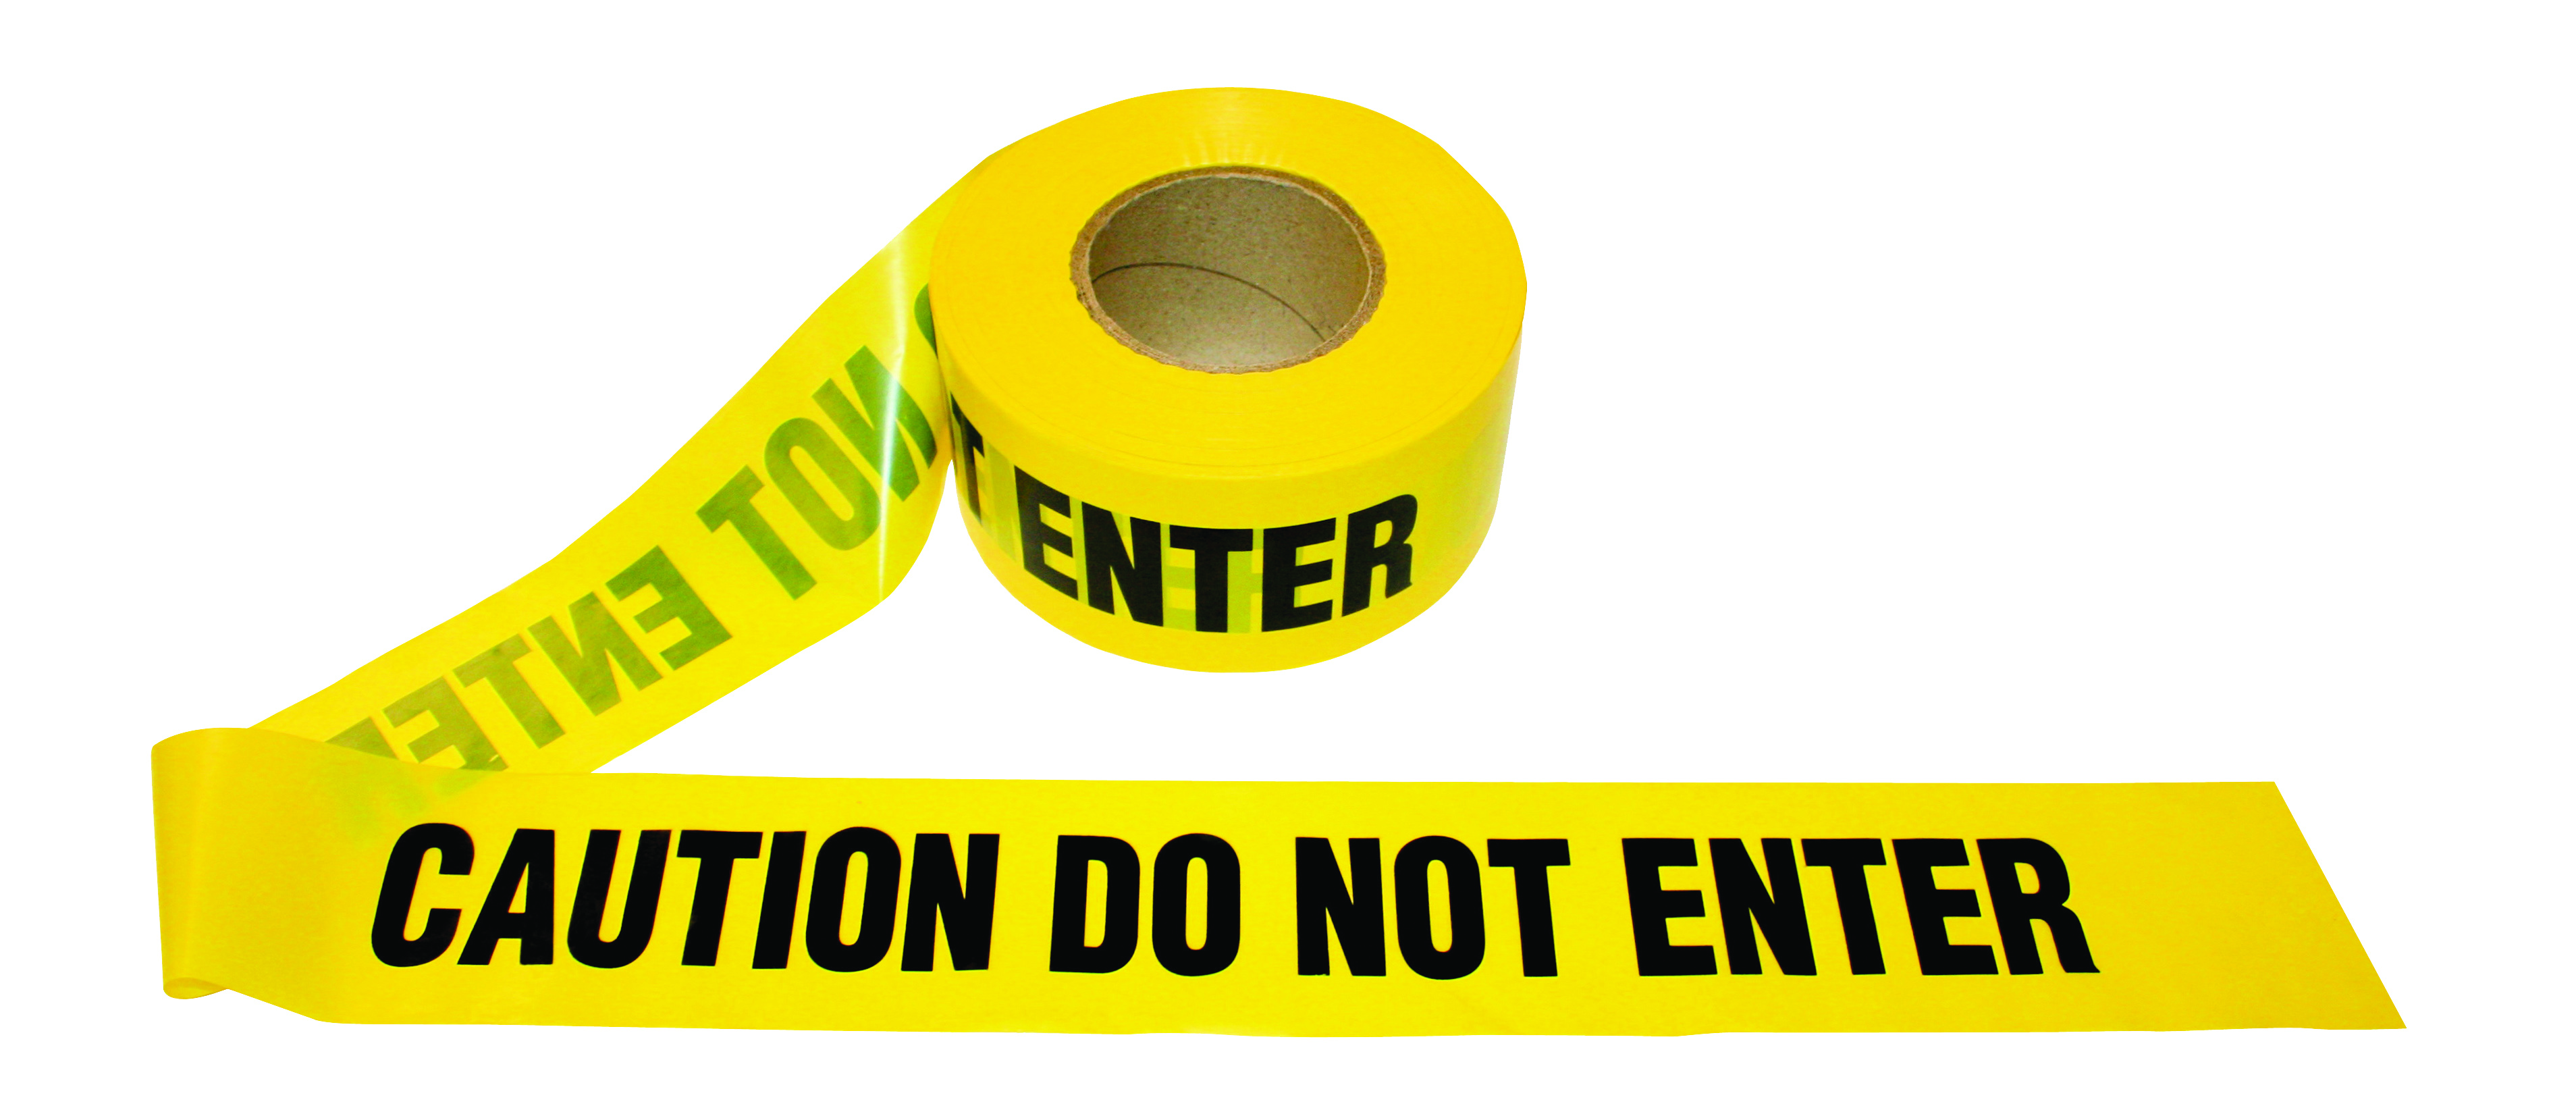 T15102 - Barricade Tape CAUTION-1.5 Mil, CAUTION DO NOT ENTER-----UOM: 1/EA